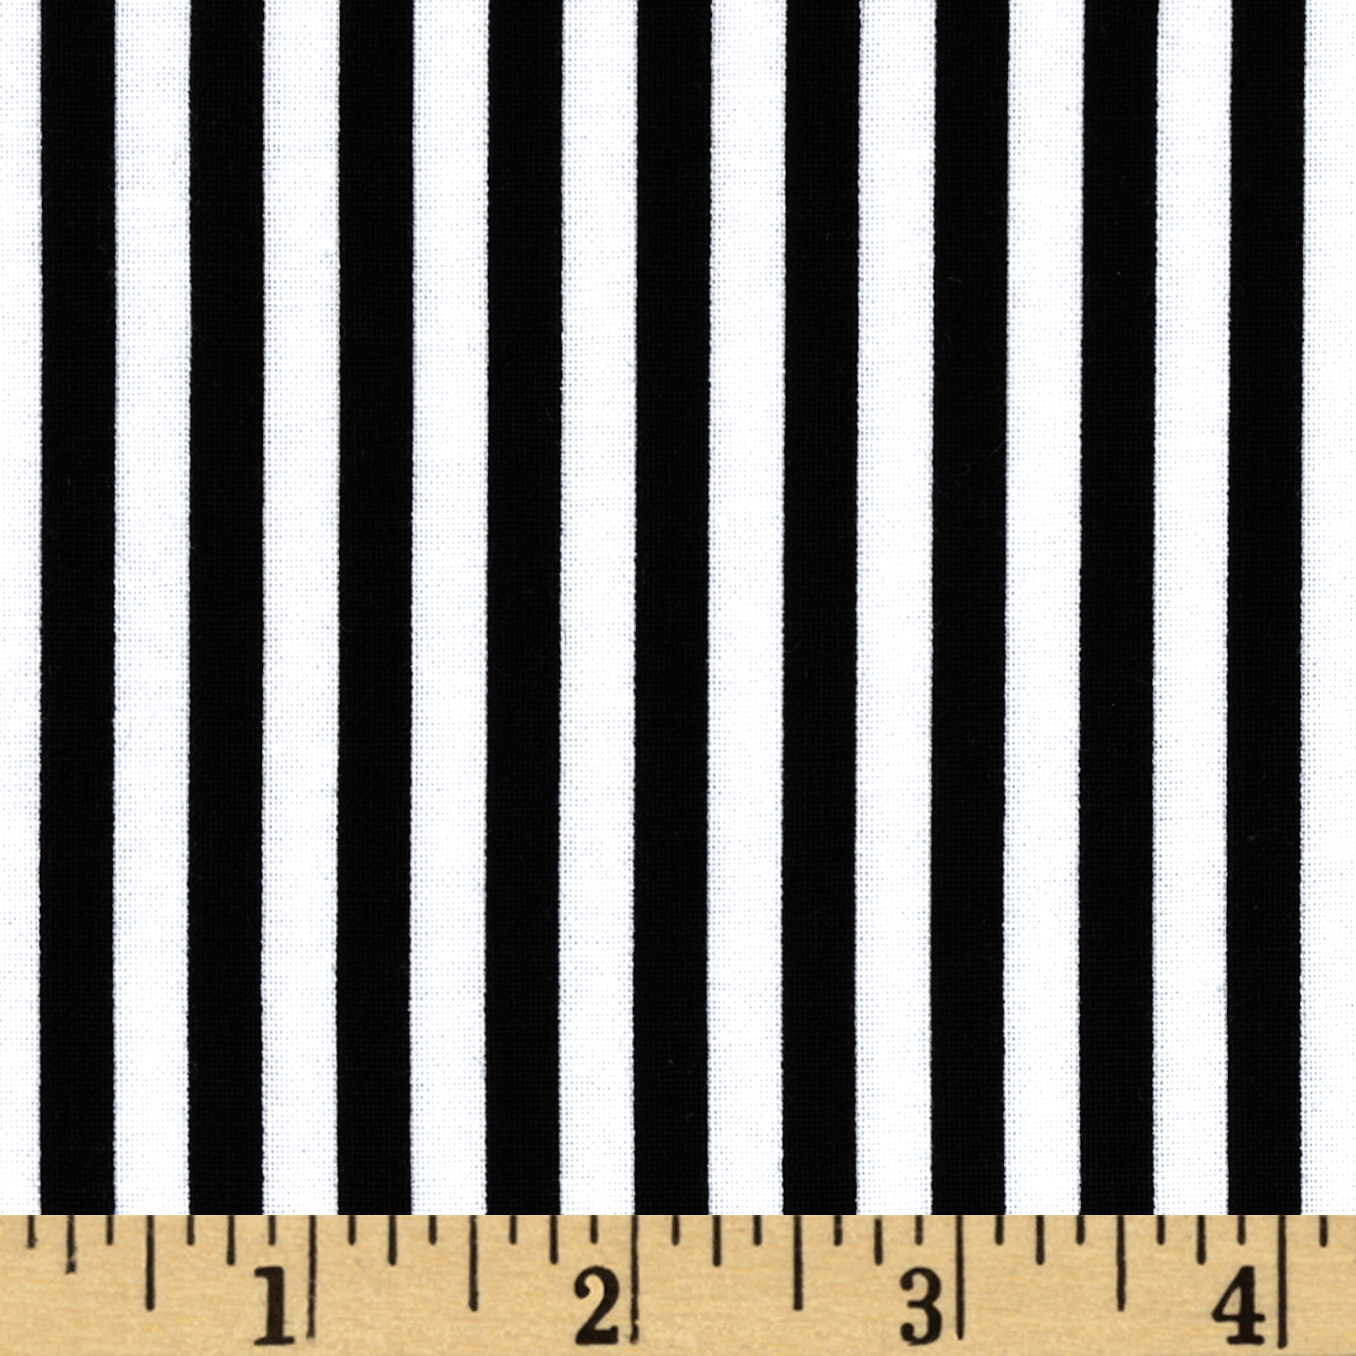 Timeless Treasures Geometric/Abstract Coordinates Stripe Black Fabric